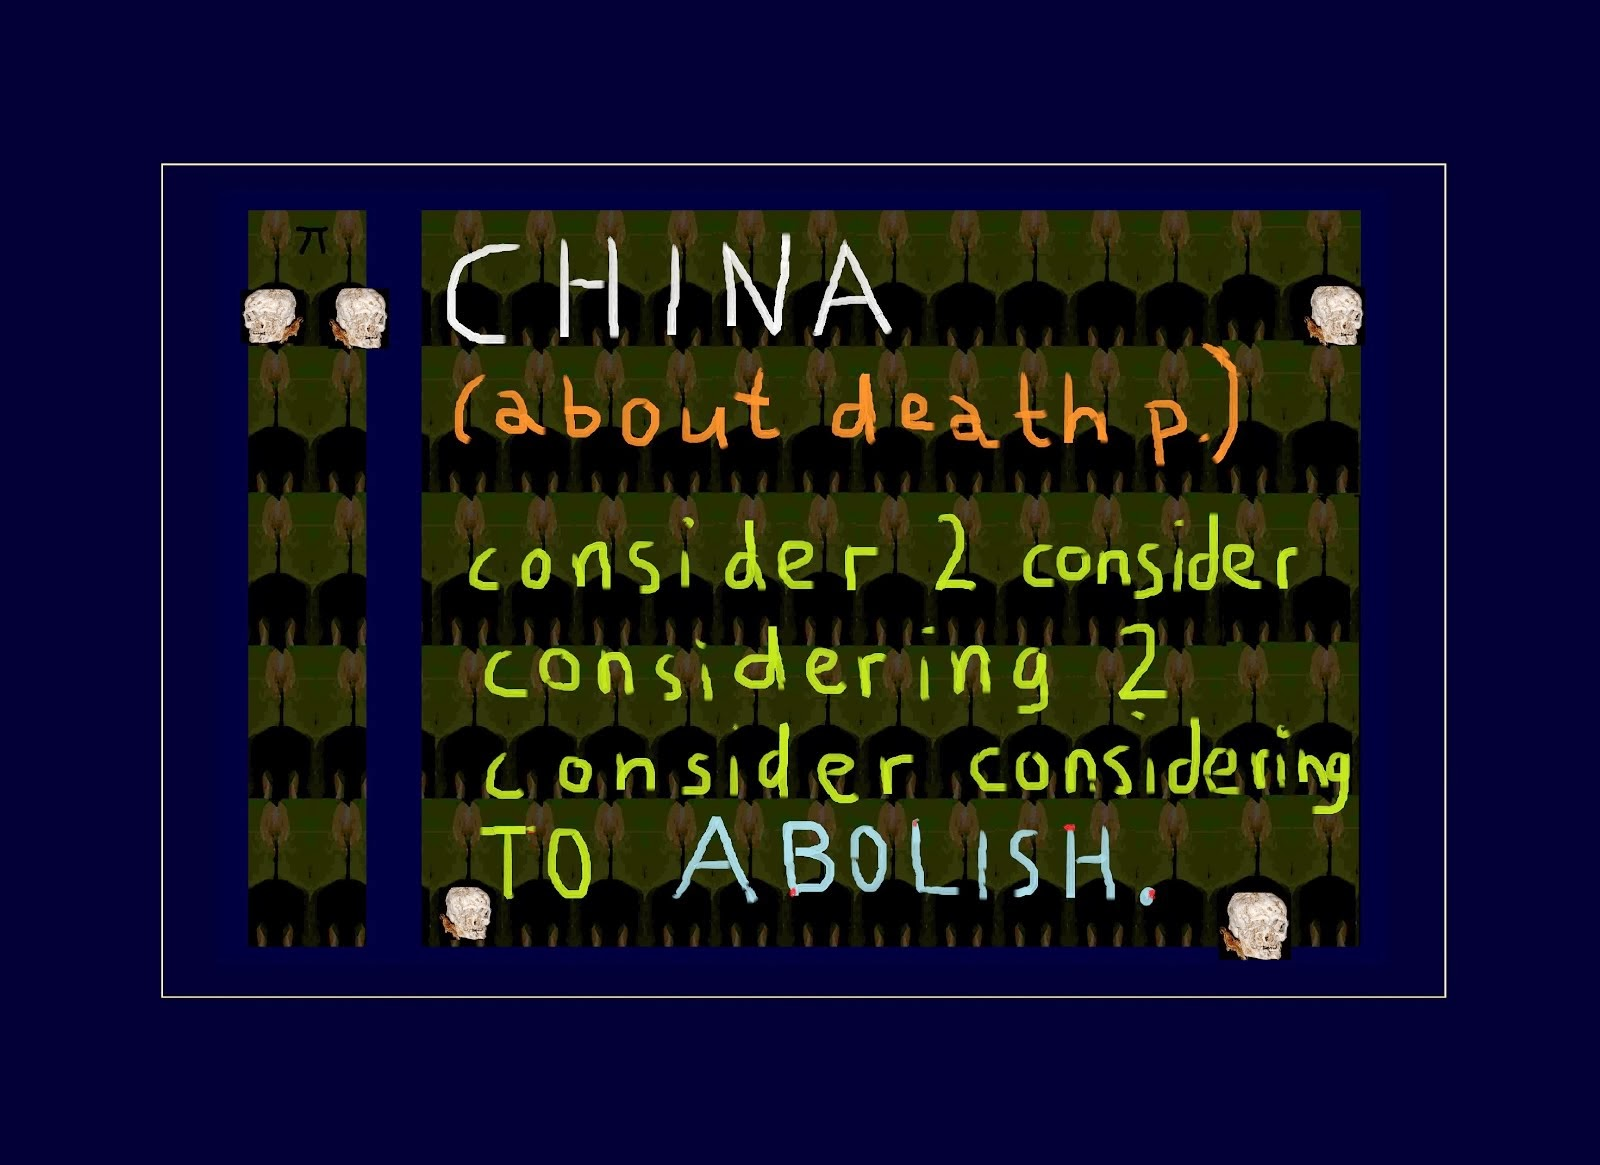 CHINA abolishment of death penalty USA barack obama hillary clintON todesstrafe VEREINIGTE STAATEN